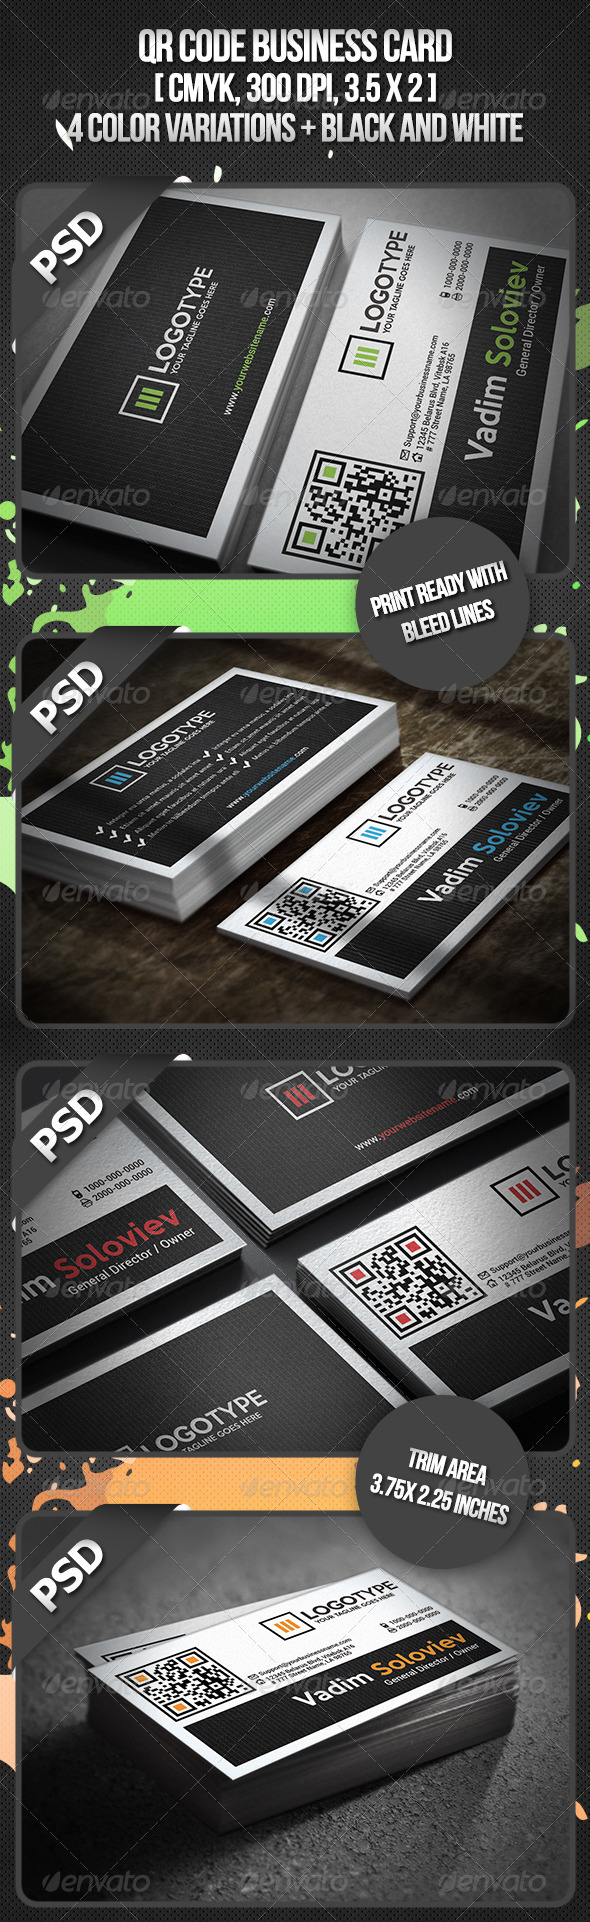 QR Code Business Card - Business Cards Print Templates